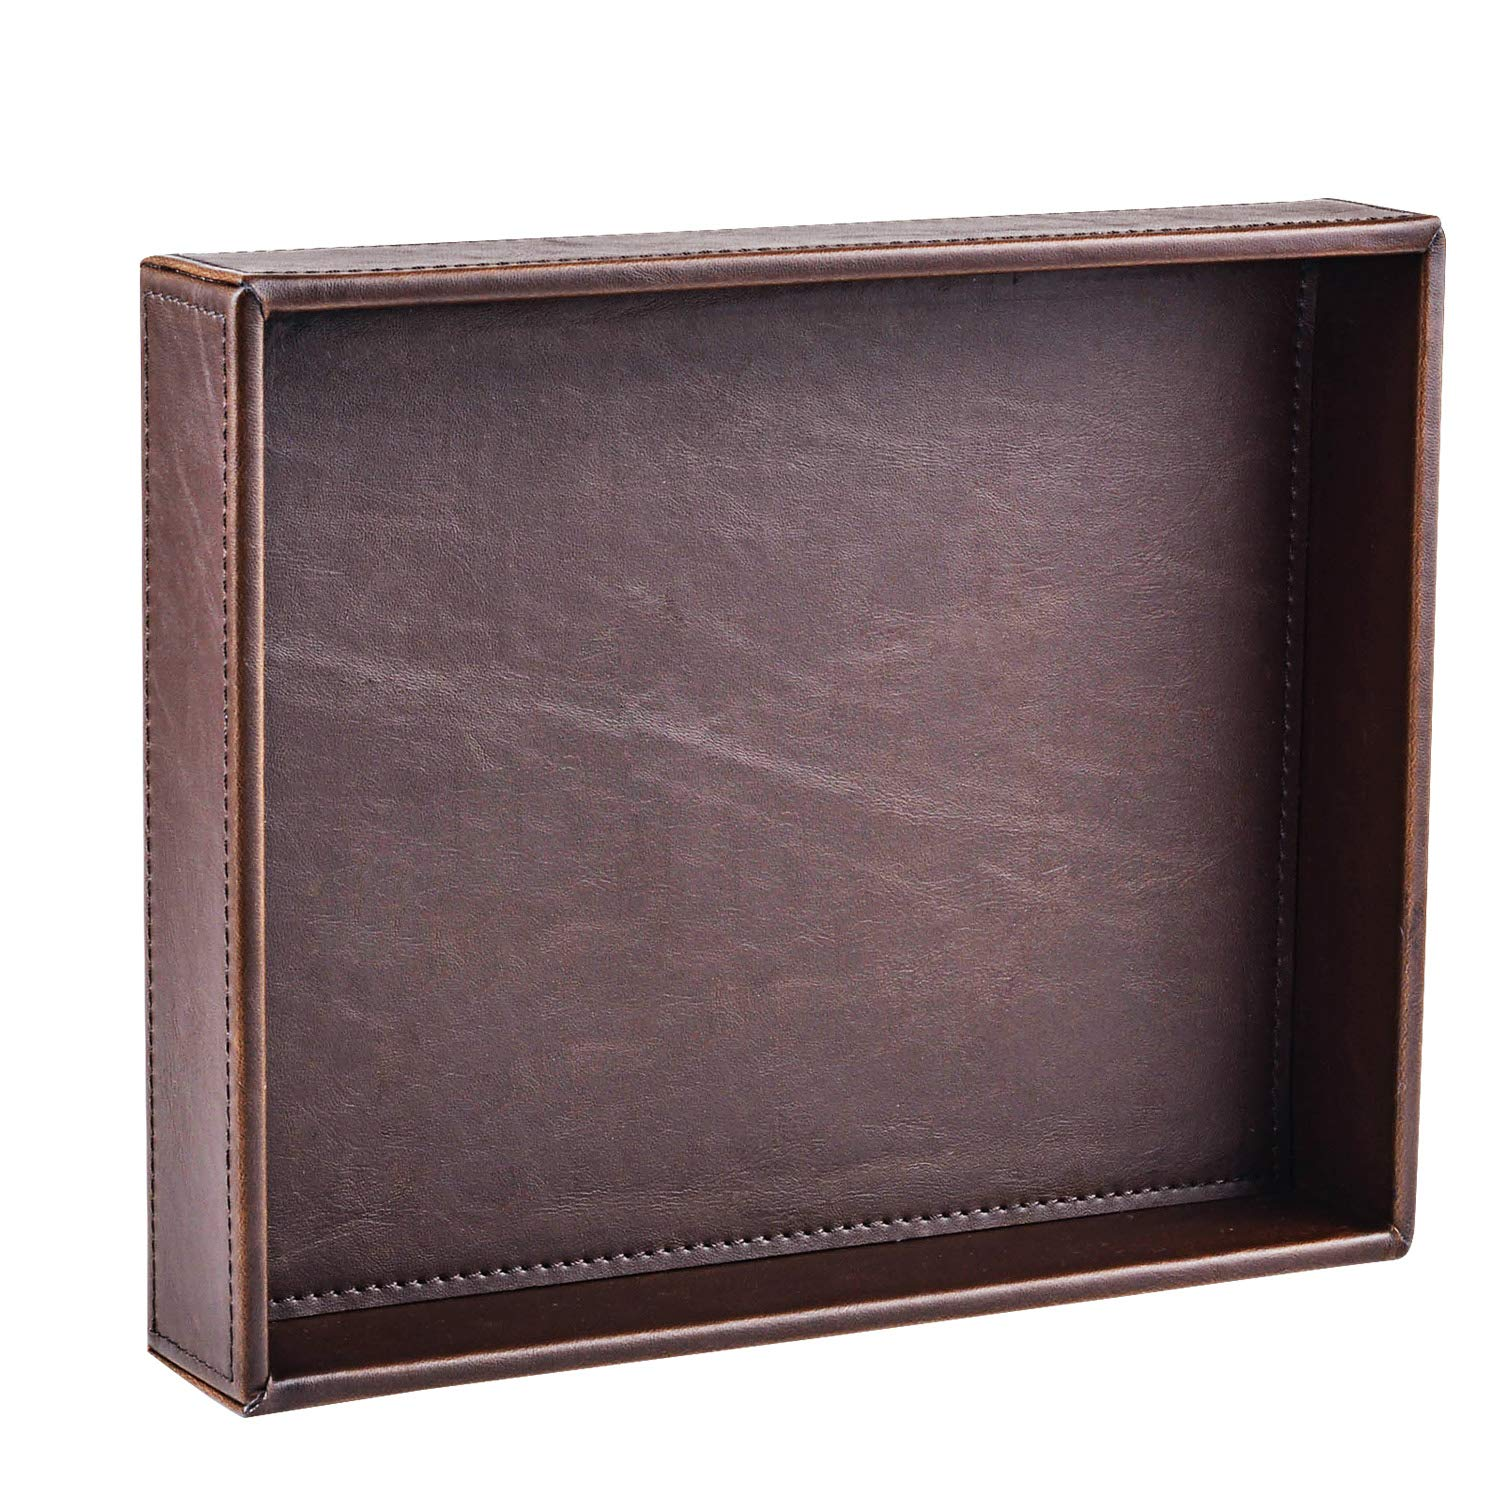 Decor Trends Brown 10.2''x8.3'' Rectangle Vintage Leather Decorative Office Desktop Storage Catchall Tray,Valet Tray,Nightstand Dresser Key Tray by Decor Trends